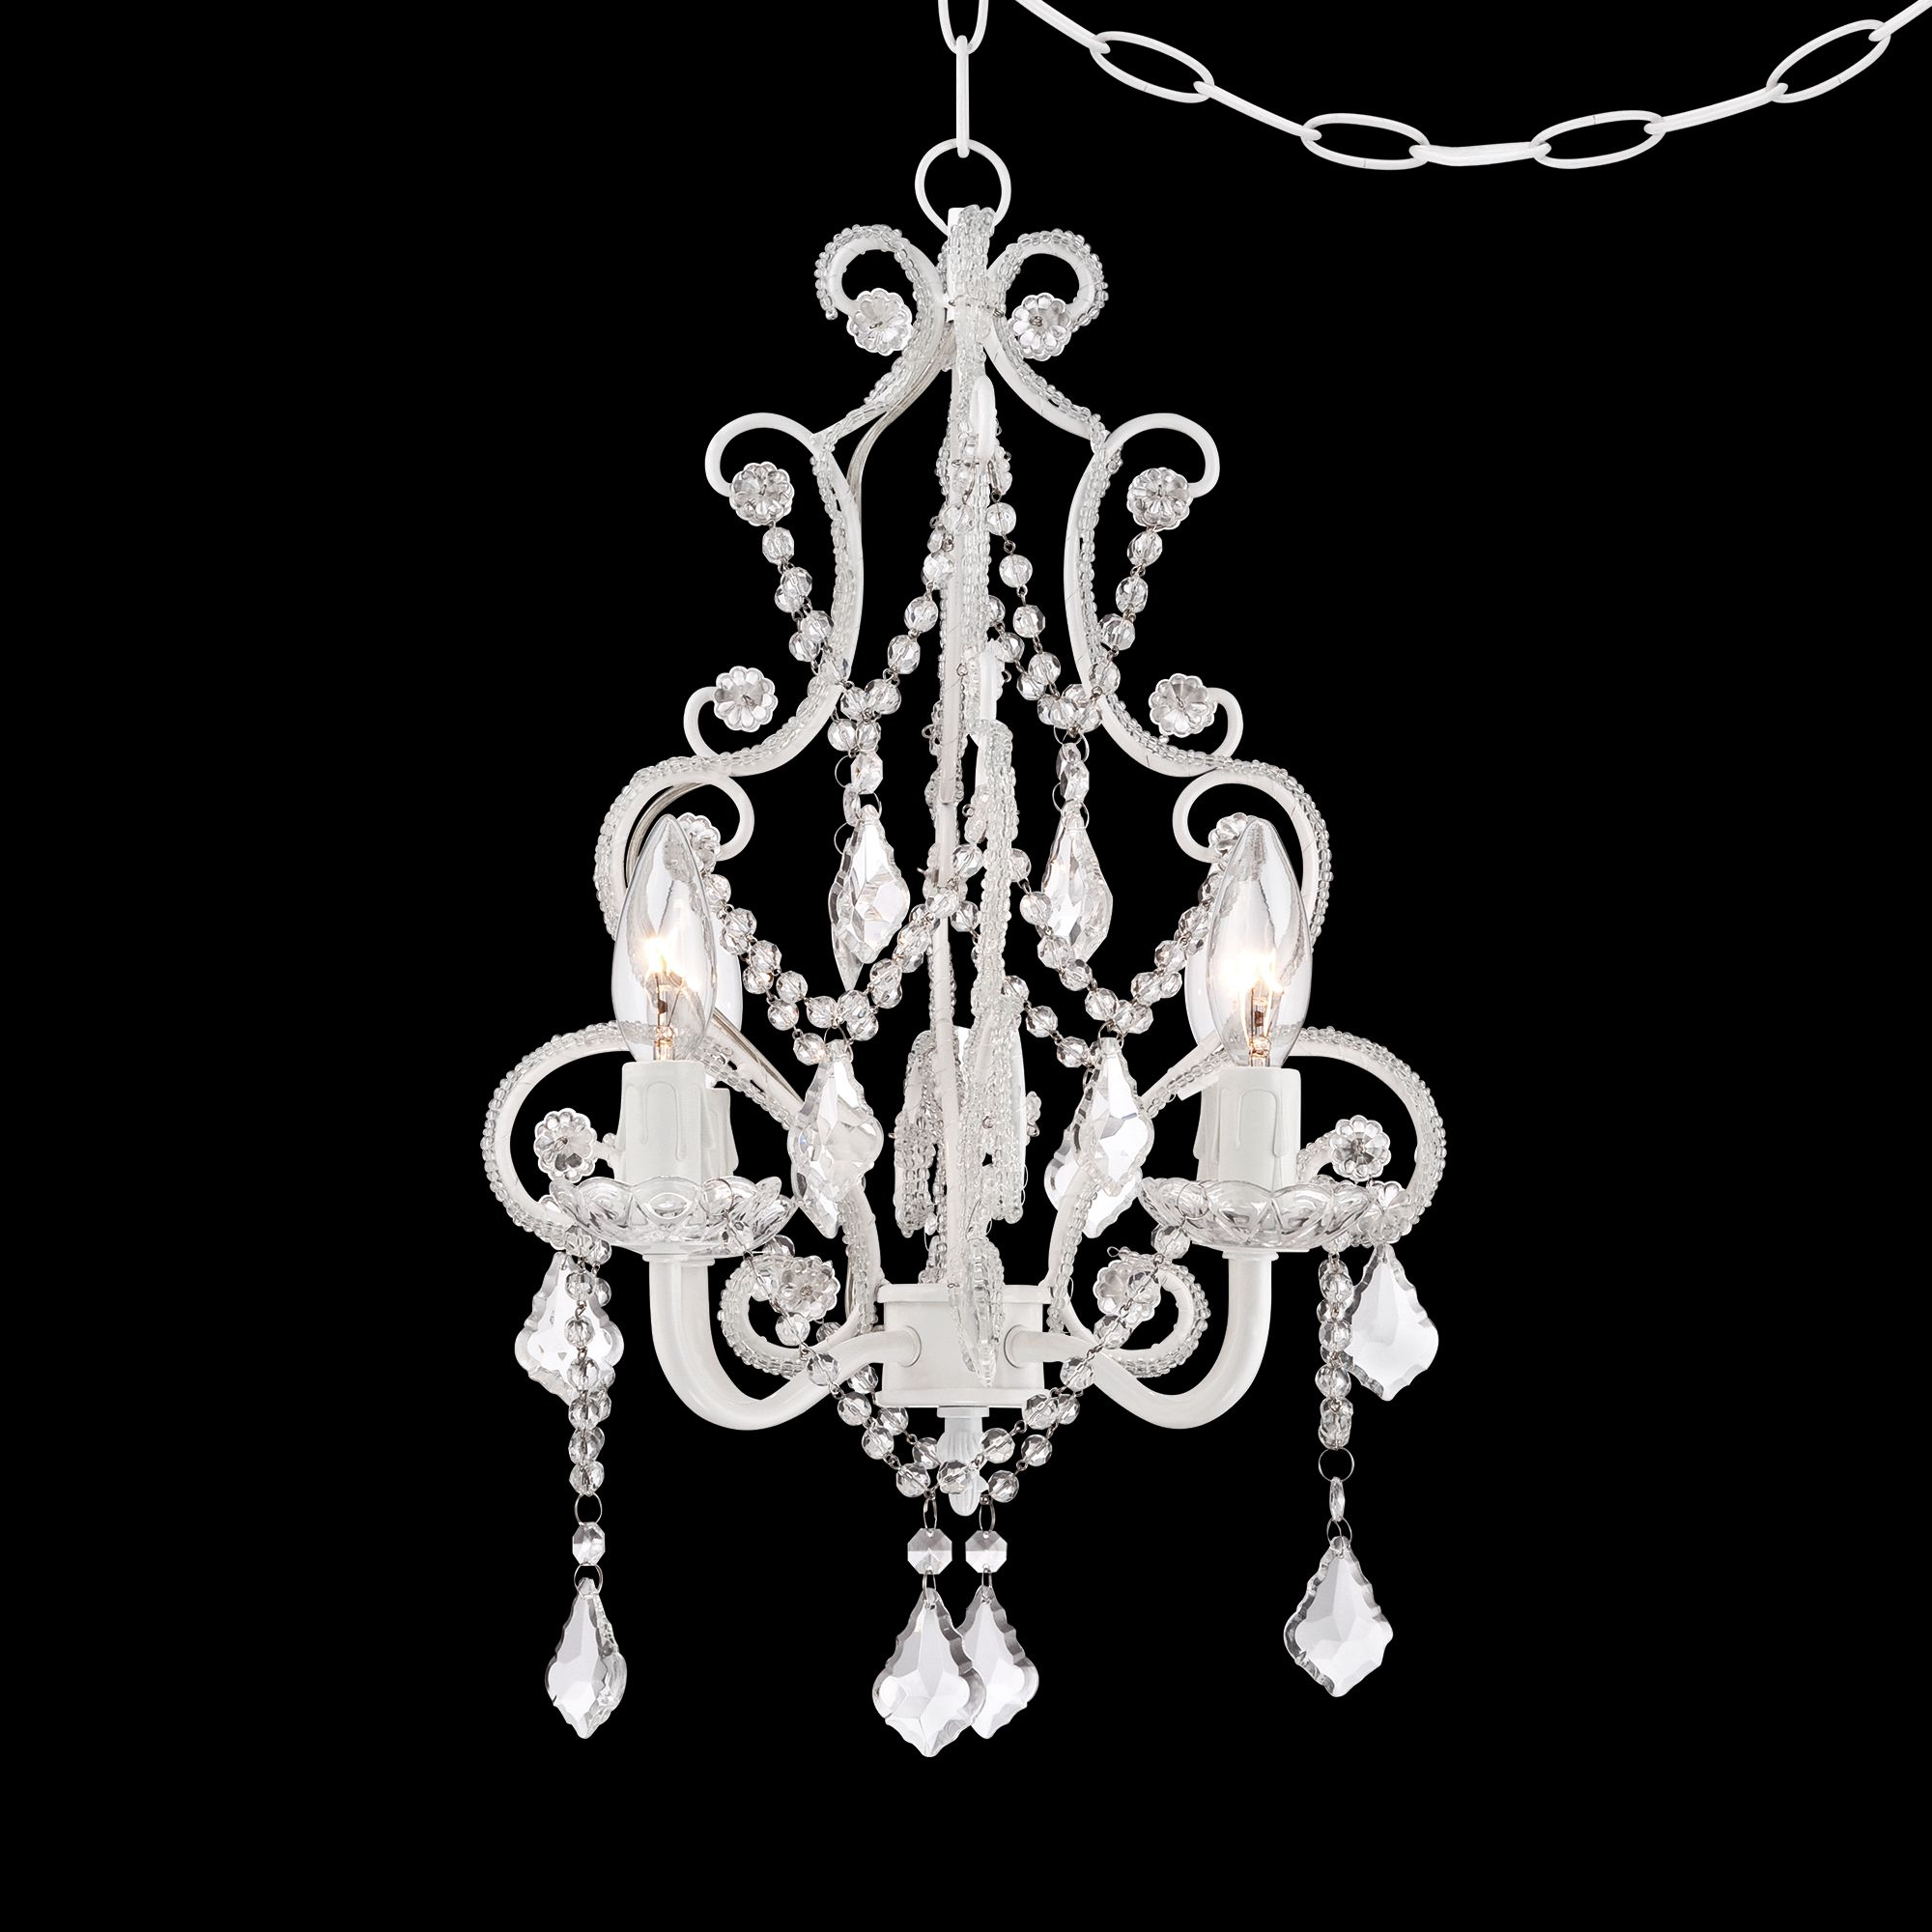 white with crystal accents plugin swag chandelier